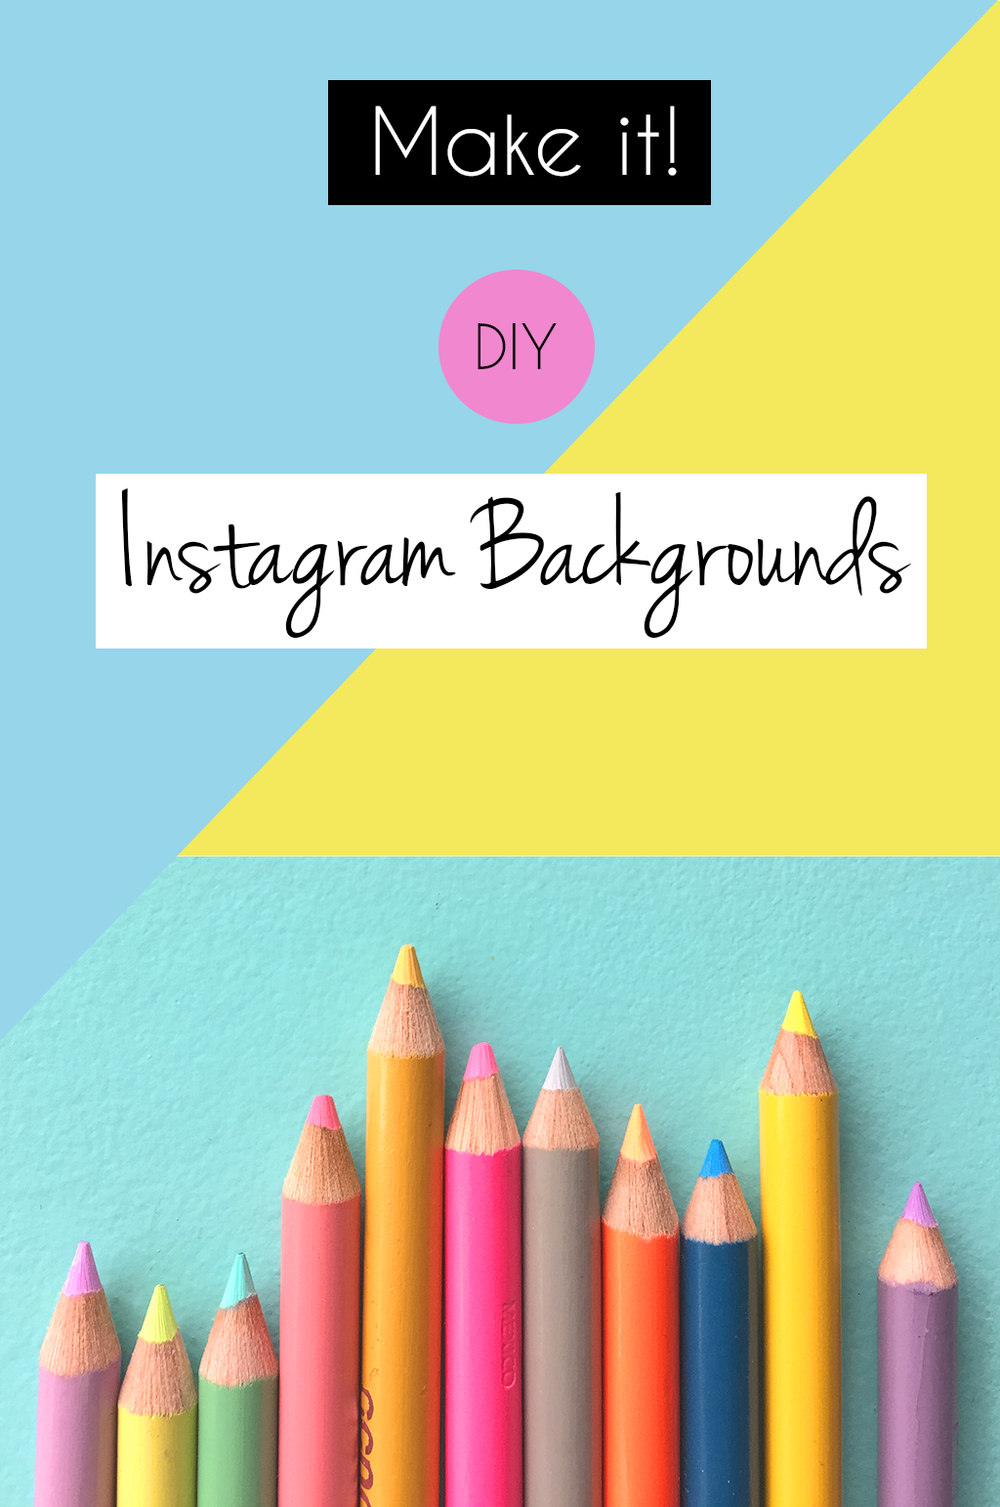 Make your own DIY instagram backgrounds